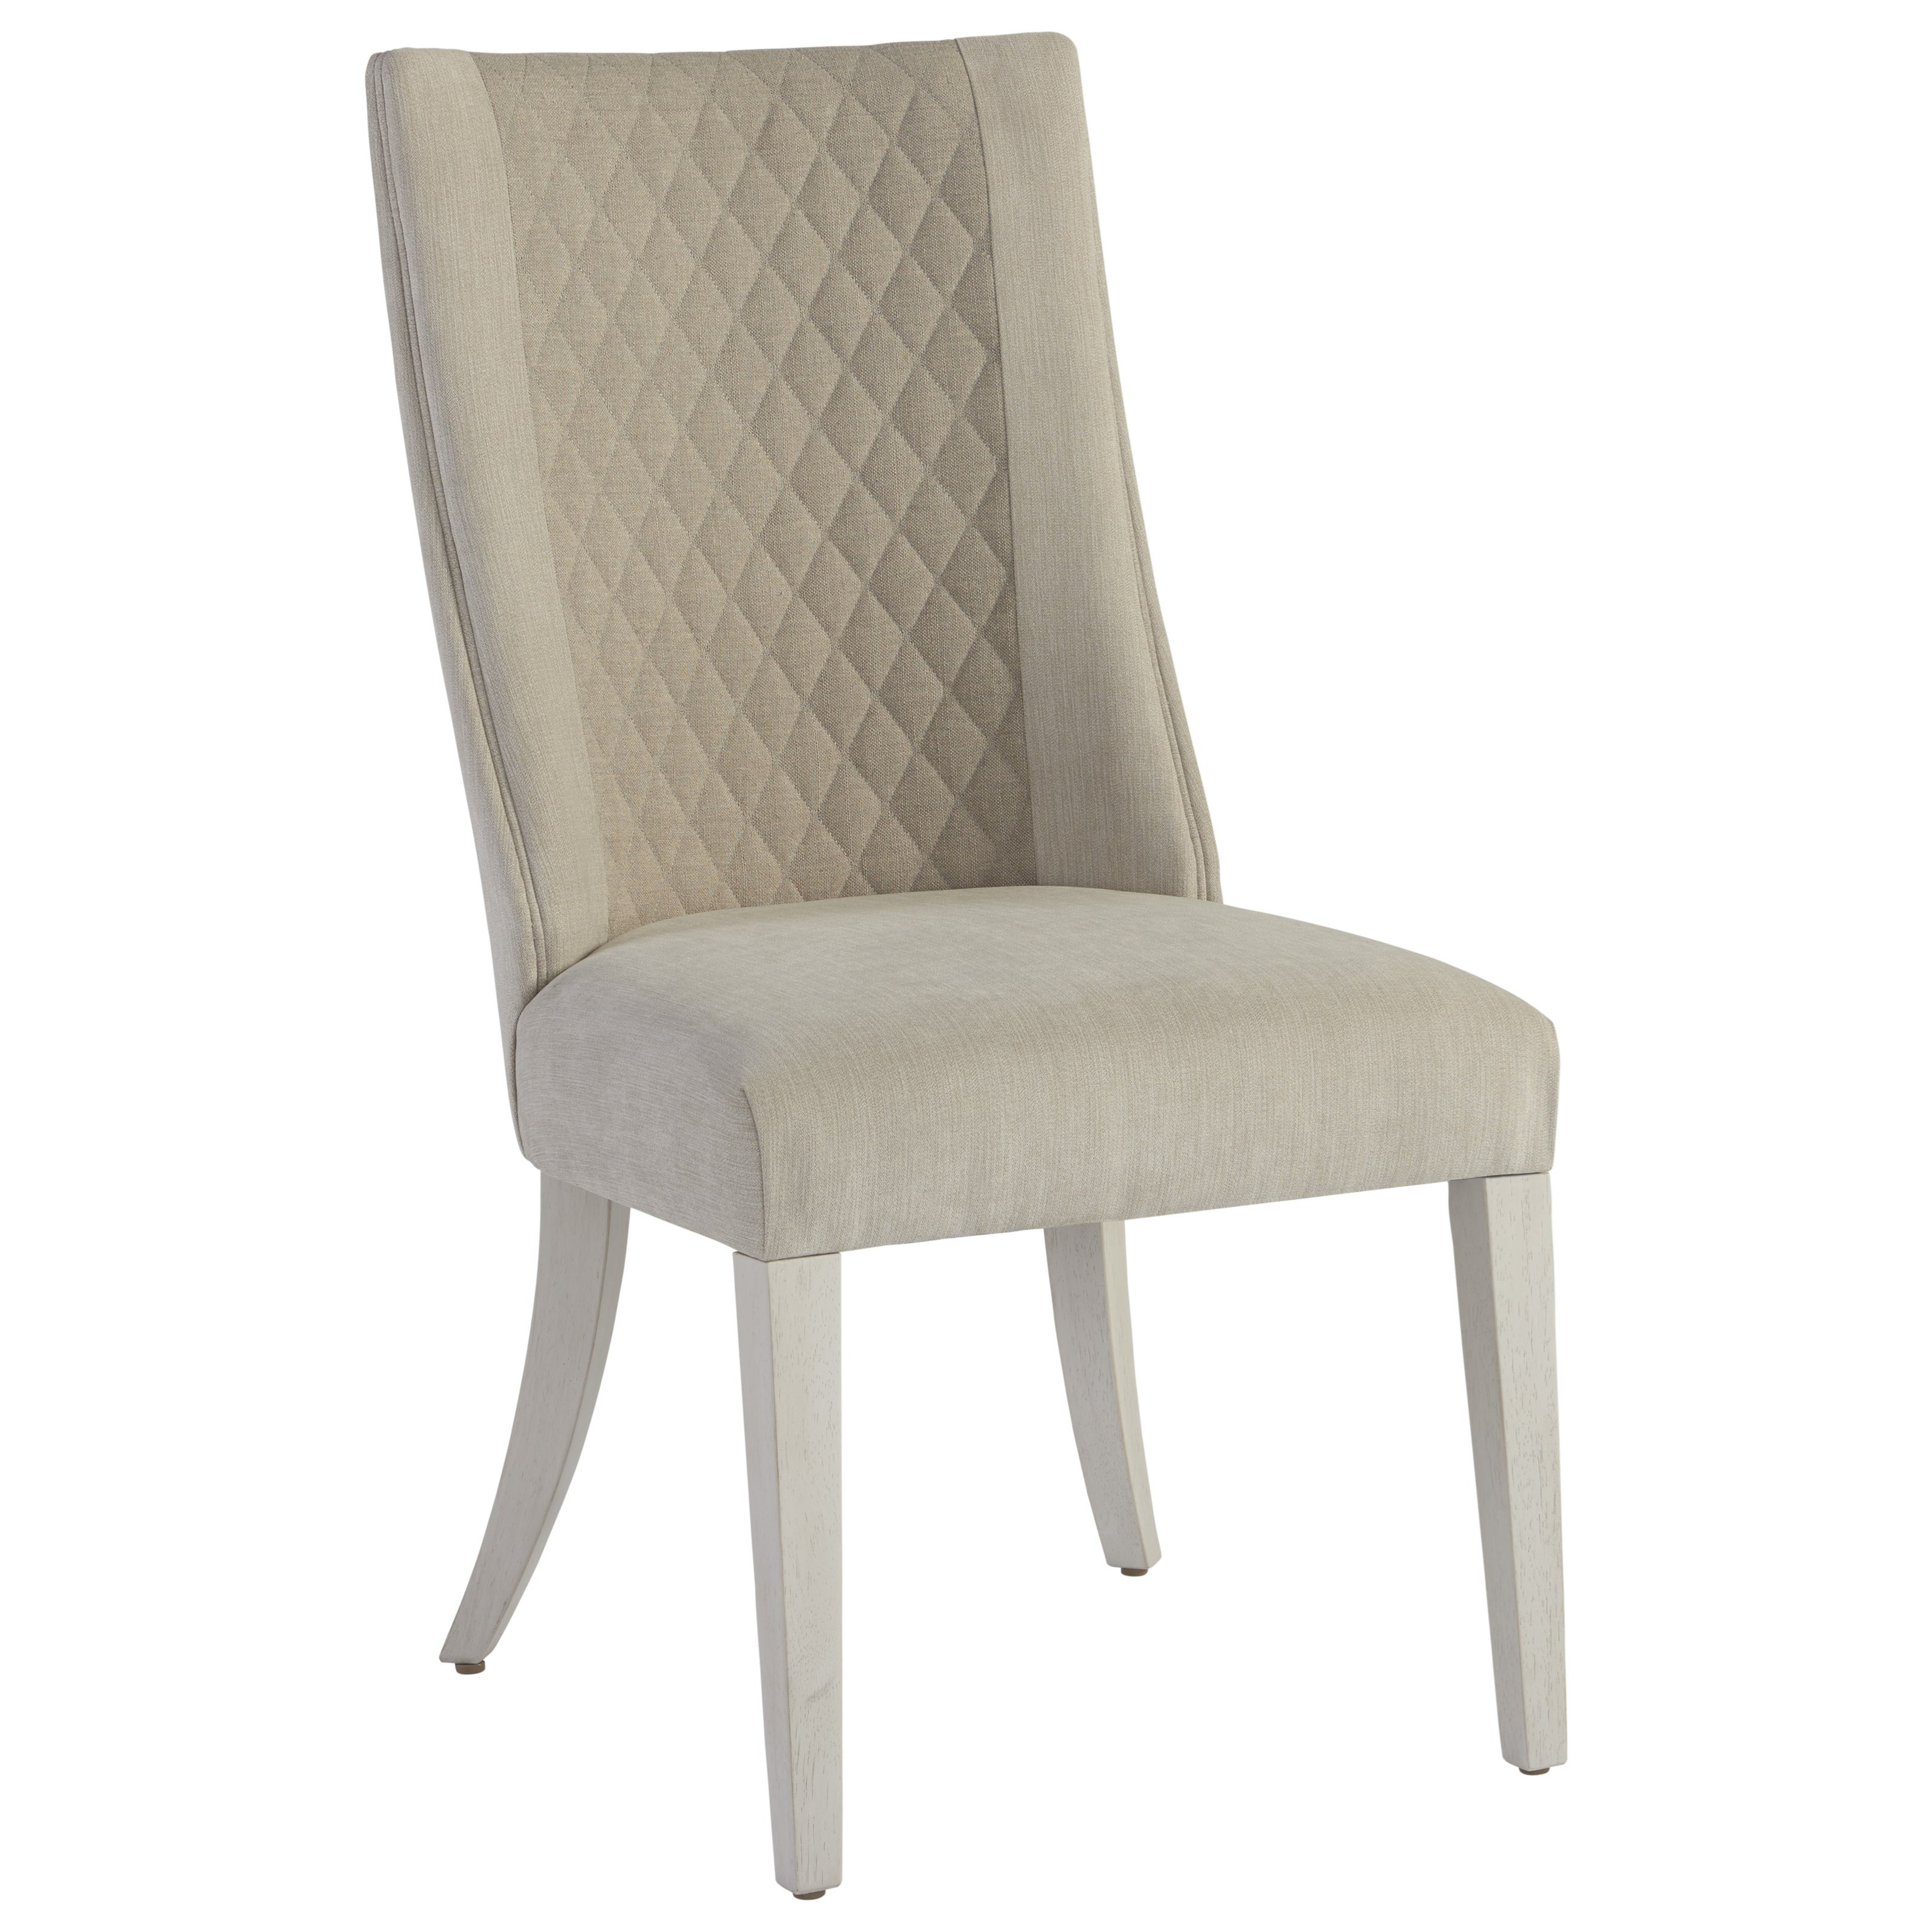 Paradox Dining Chair by Universal at Baer's Furniture